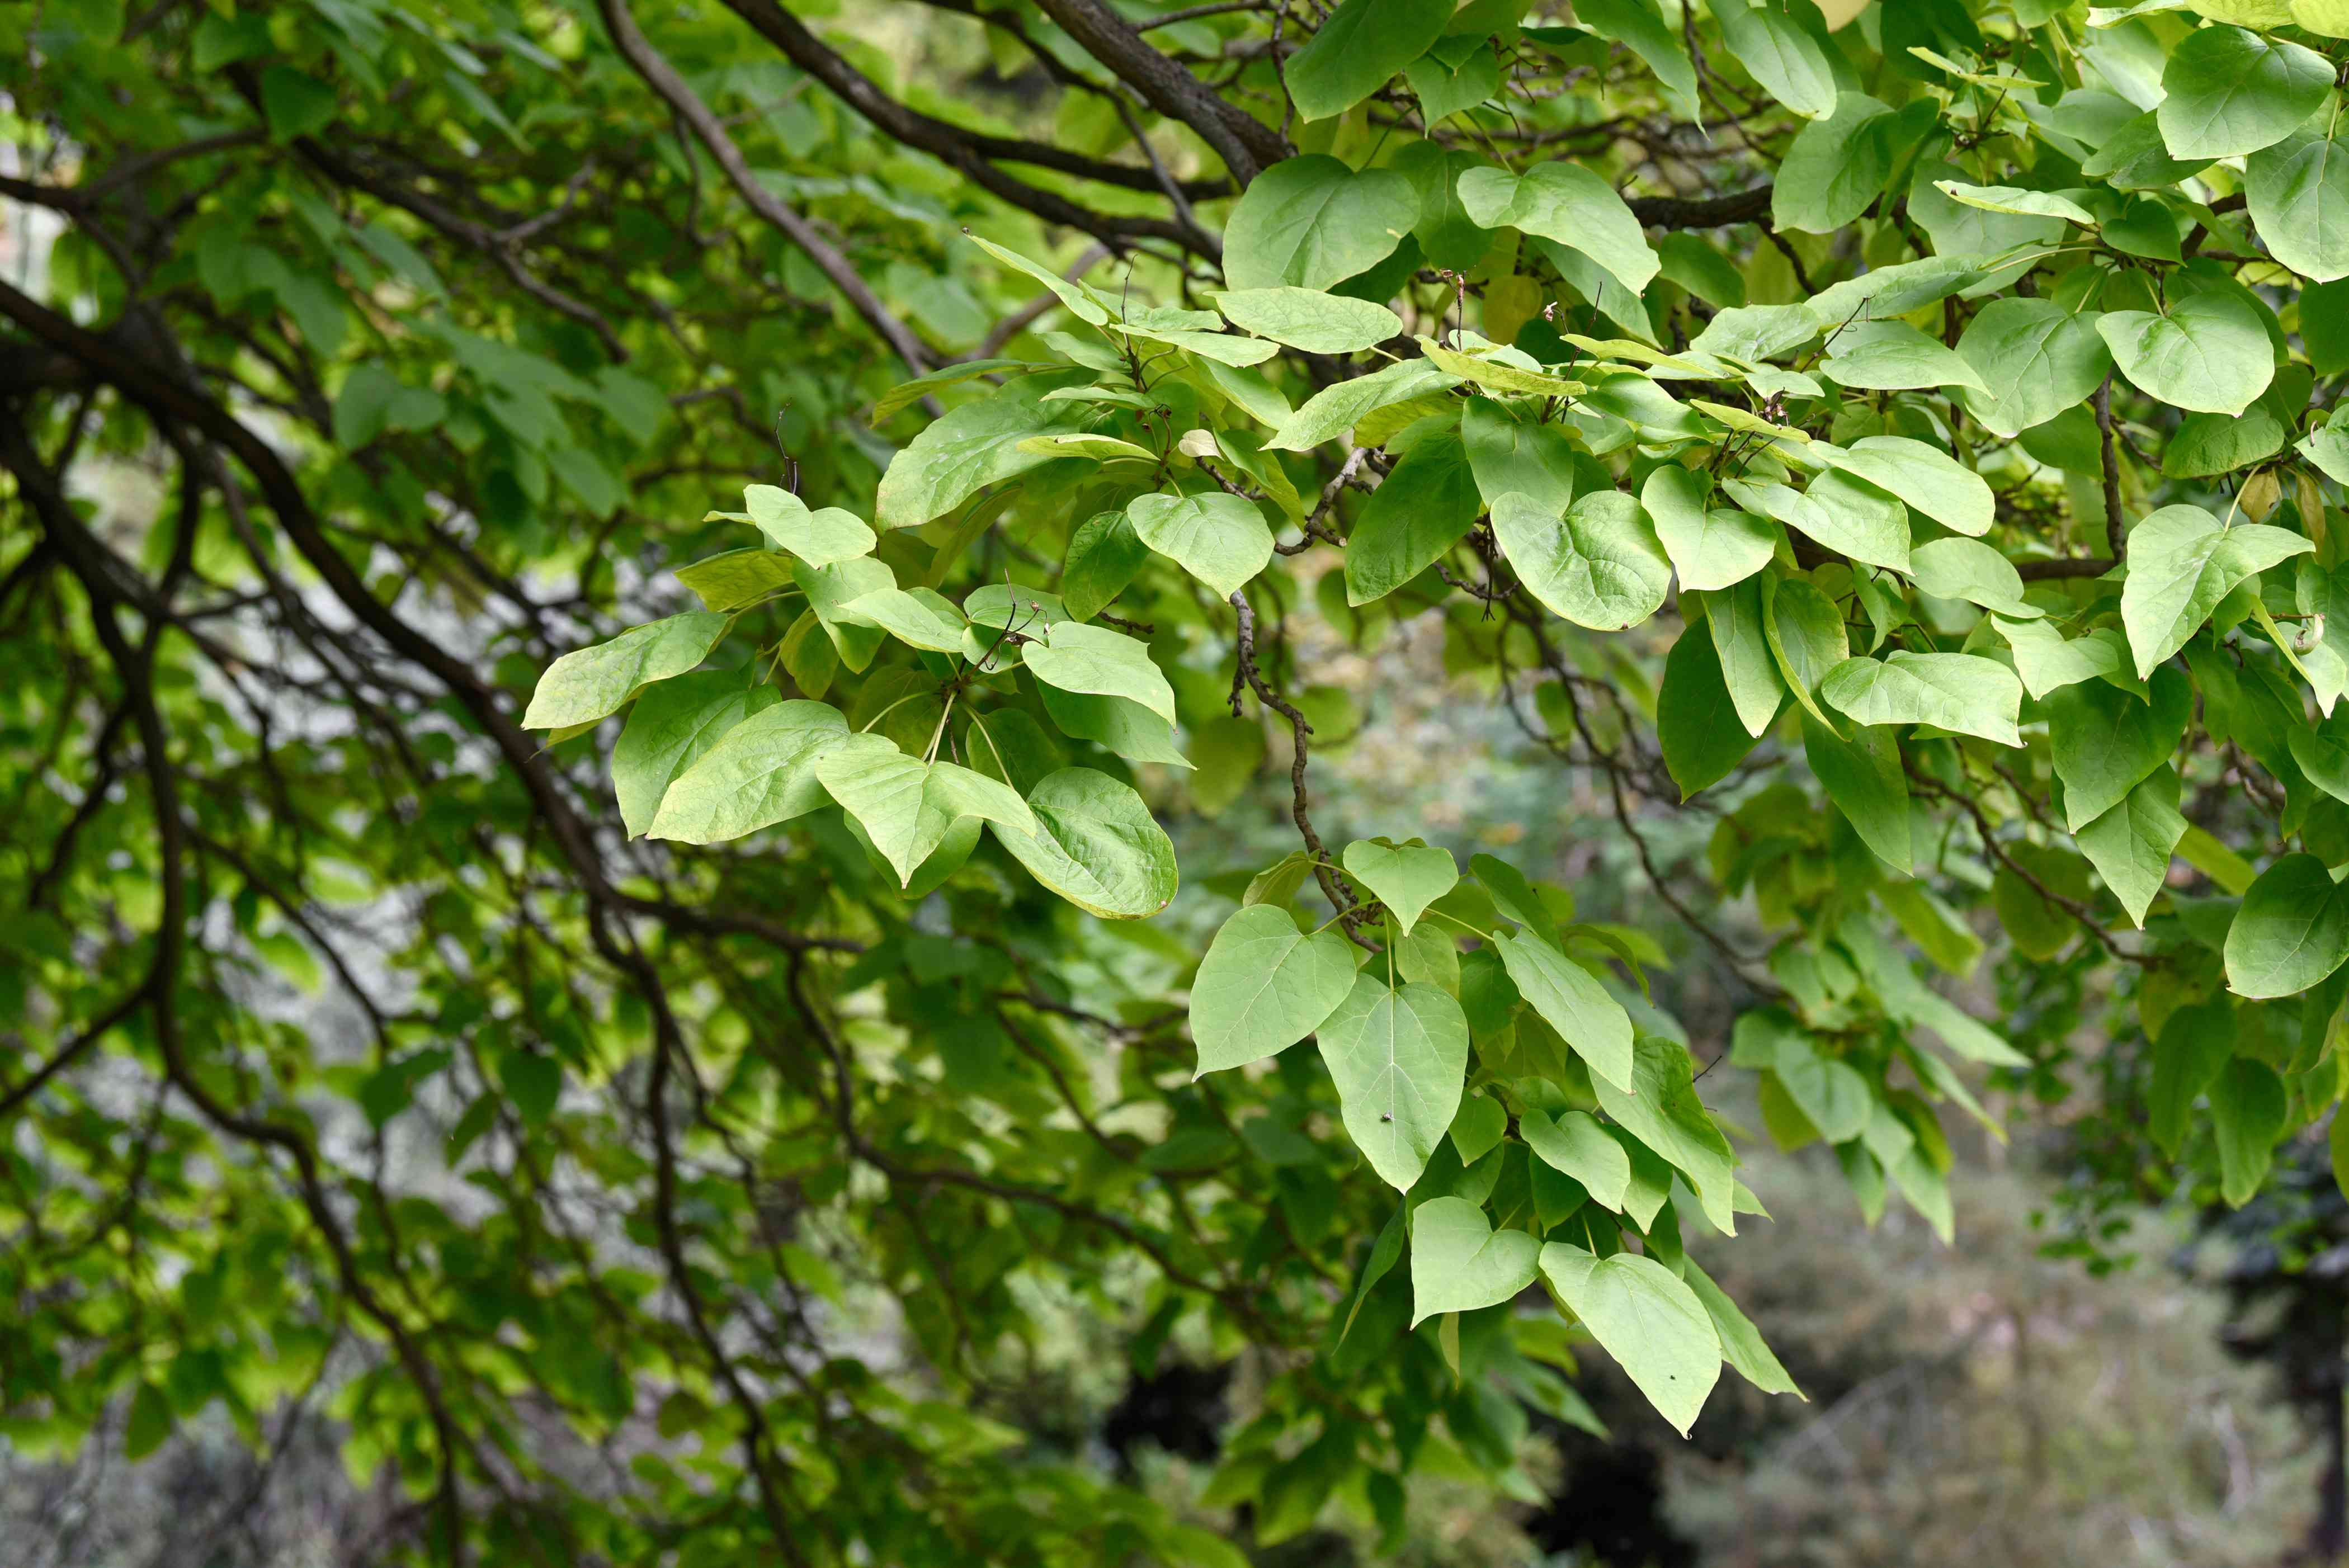 Catalpa tree branches with bright green and heart-shaped leaves hanging